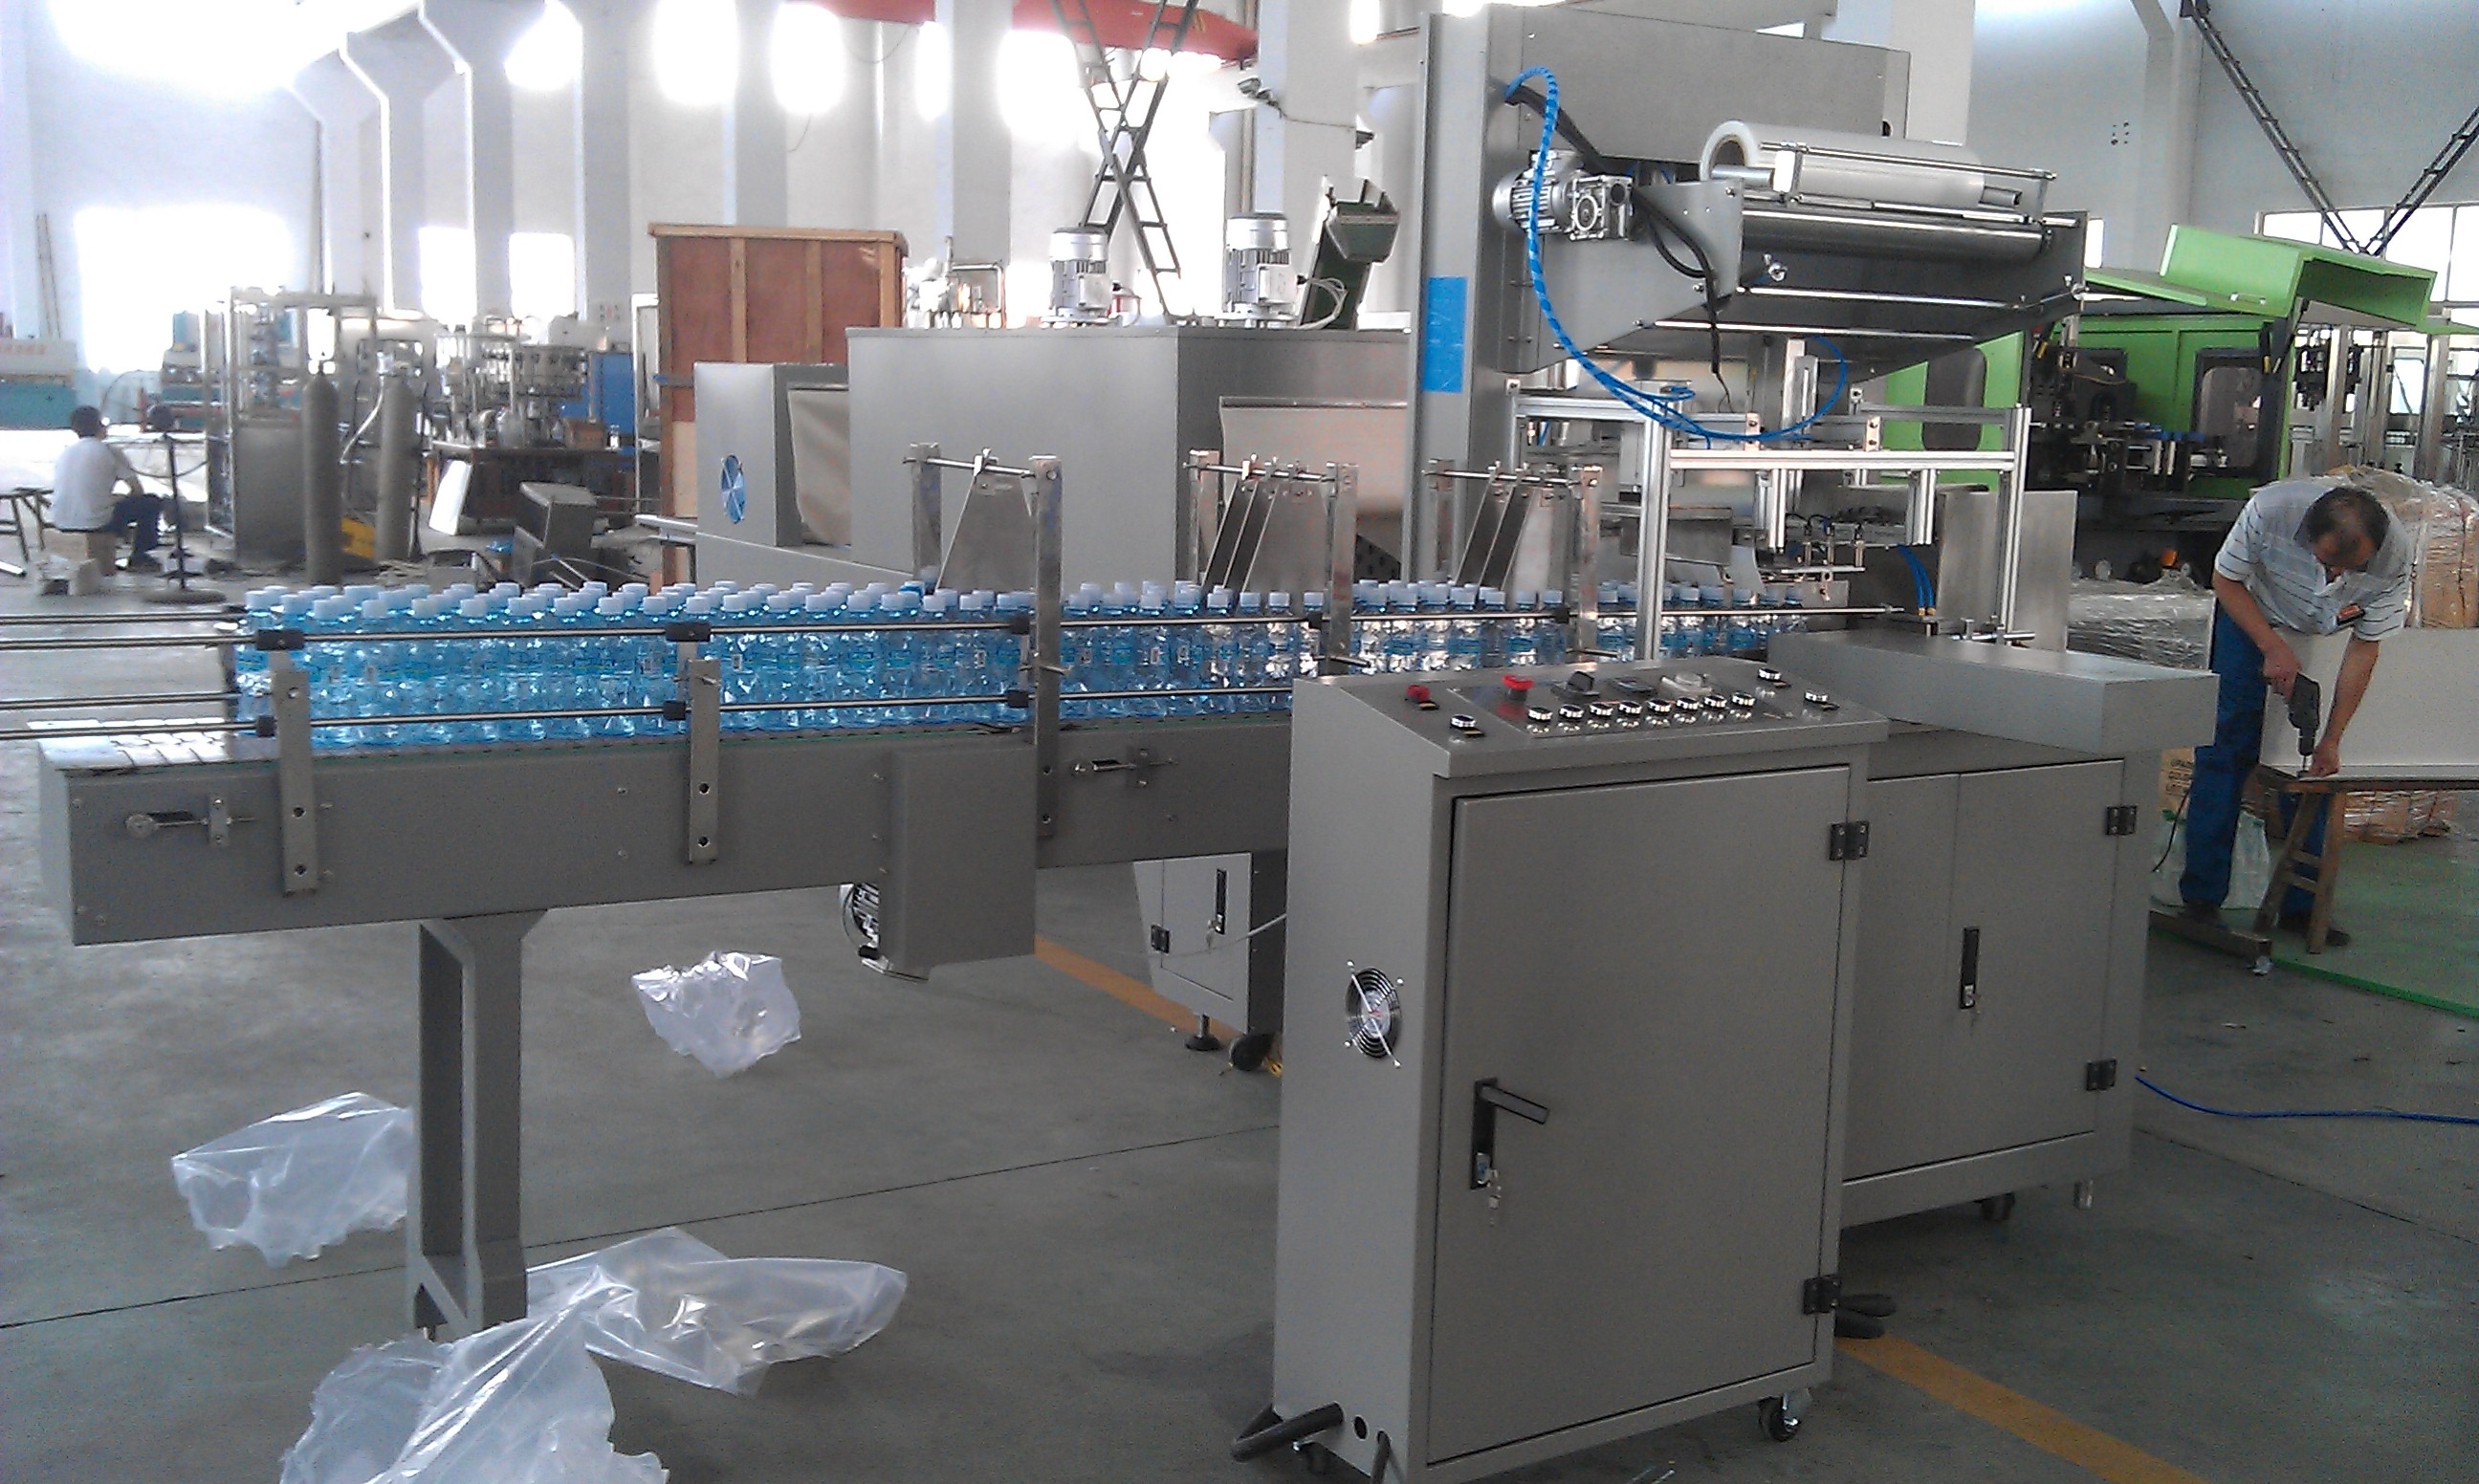 Label Sleeving Machine for Algeria Customer​